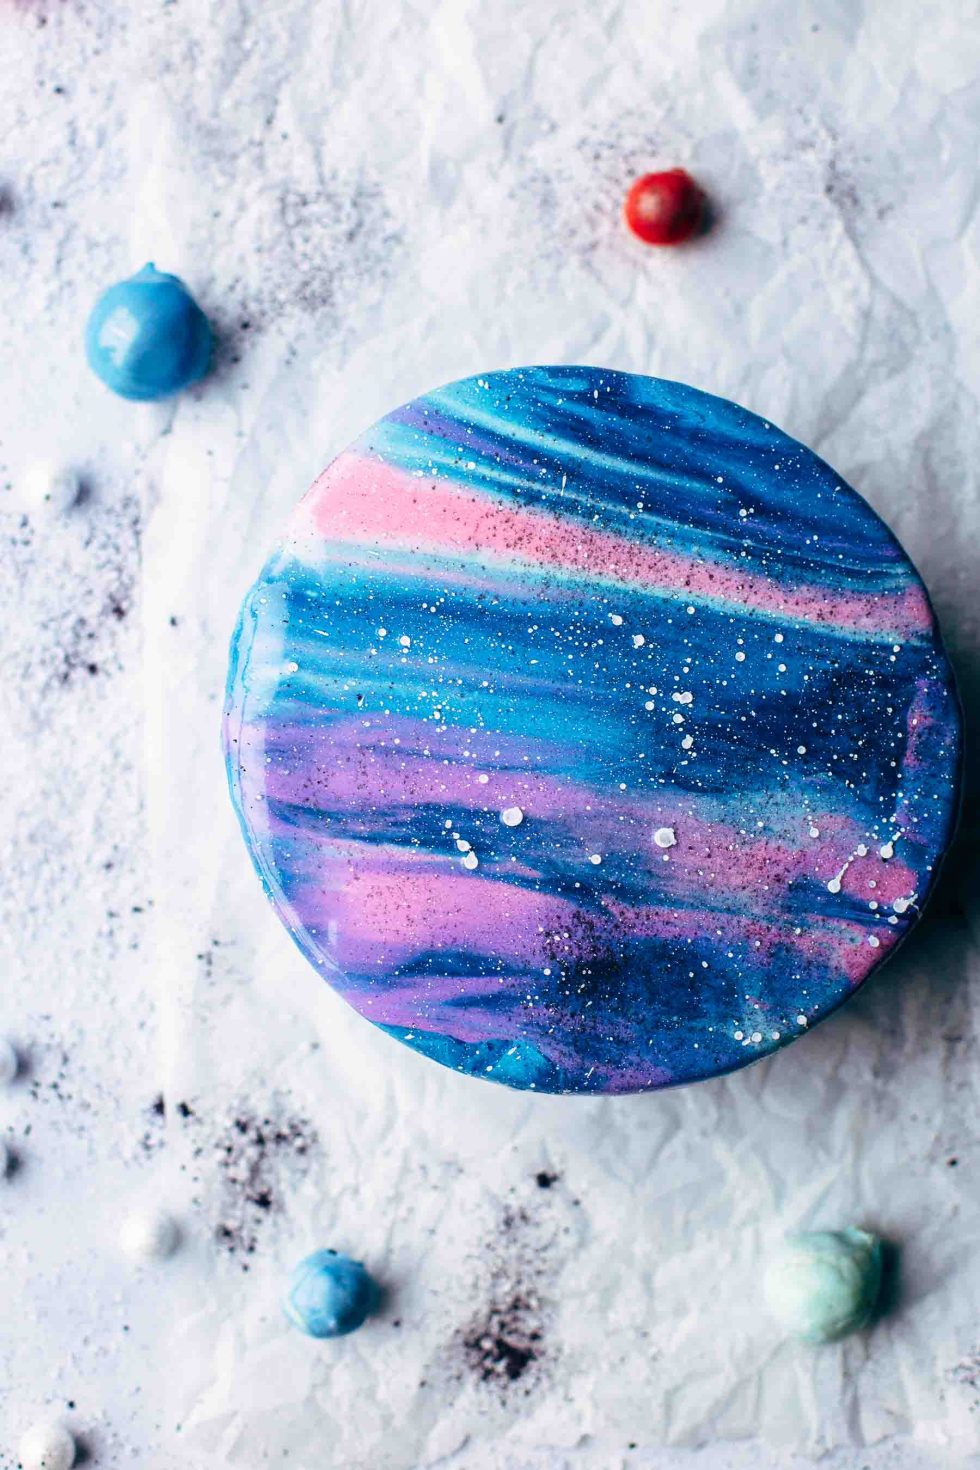 Mirror Glaze Galaxy Cake Recipe Video Also The Crumbs